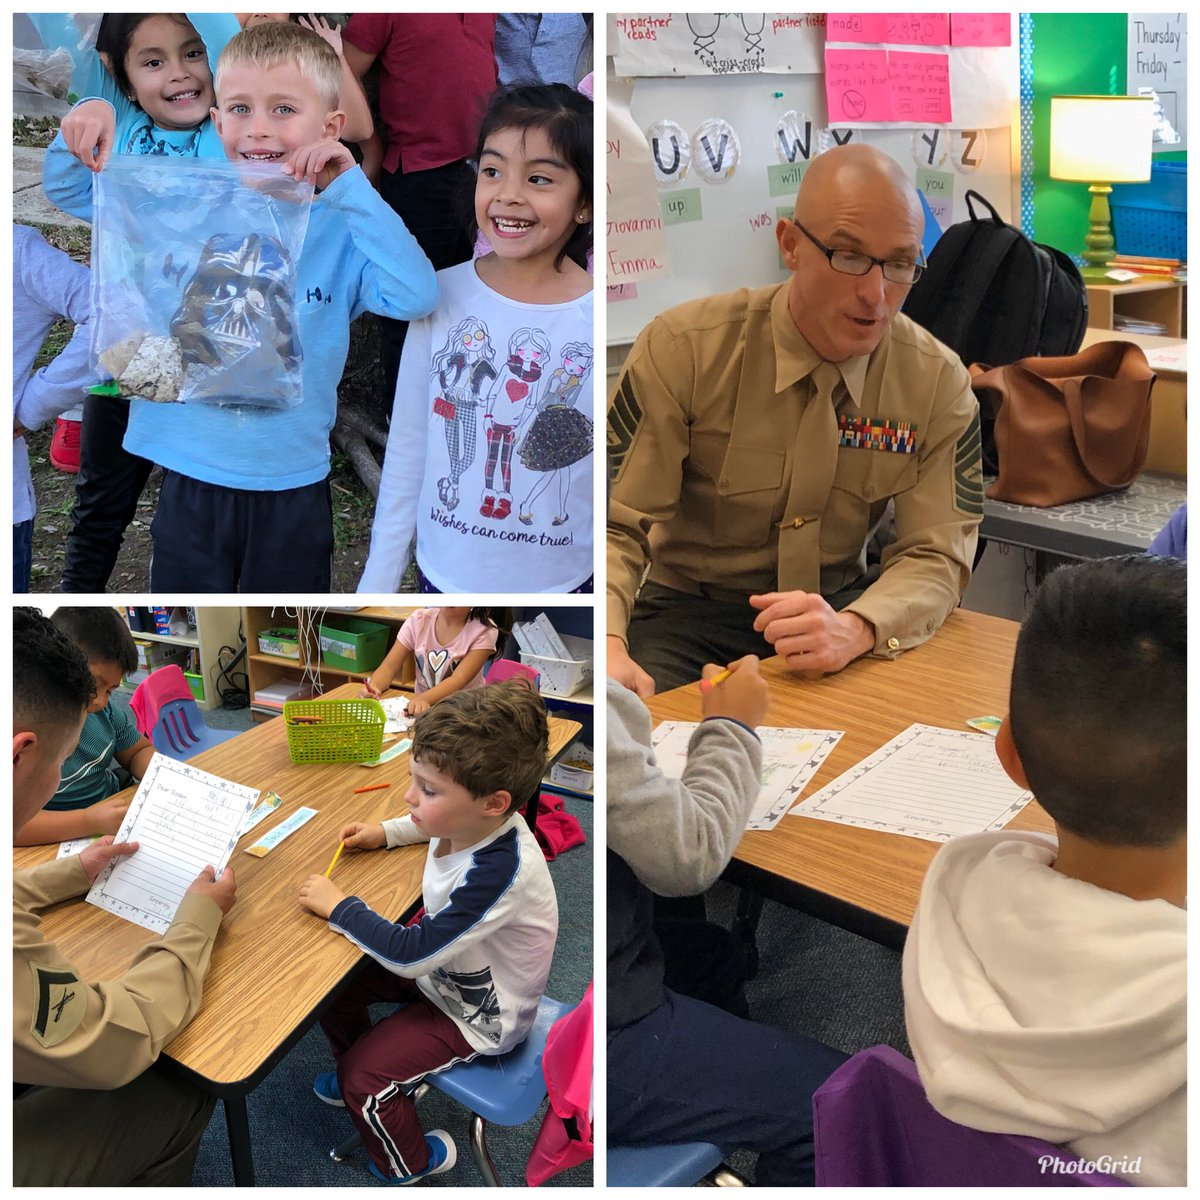 Twenty-seven completed service projects on Barcroft's Day of Service & over 500 individual acts of kindness. Way to go Eagles!! <a target='_blank' href='http://twitter.com/BarcroftLibrary'>@BarcroftLibrary</a> <a target='_blank' href='http://twitter.com/APSVirginia'>@APSVirginia</a> <a target='_blank' href='http://twitter.com/Cornacchio4th'>@Cornacchio4th</a> <a target='_blank' href='http://twitter.com/msarroyotweets'>@msarroyotweets</a> <a target='_blank' href='http://twitter.com/MsHyattinThird'>@MsHyattinThird</a> <a target='_blank' href='http://twitter.com/teachnpe'>@teachnpe</a> <a target='_blank' href='http://twitter.com/VPLiaison'>@VPLiaison</a> <a target='_blank' href='https://t.co/RHIyfVwQu5'>https://t.co/RHIyfVwQu5</a>